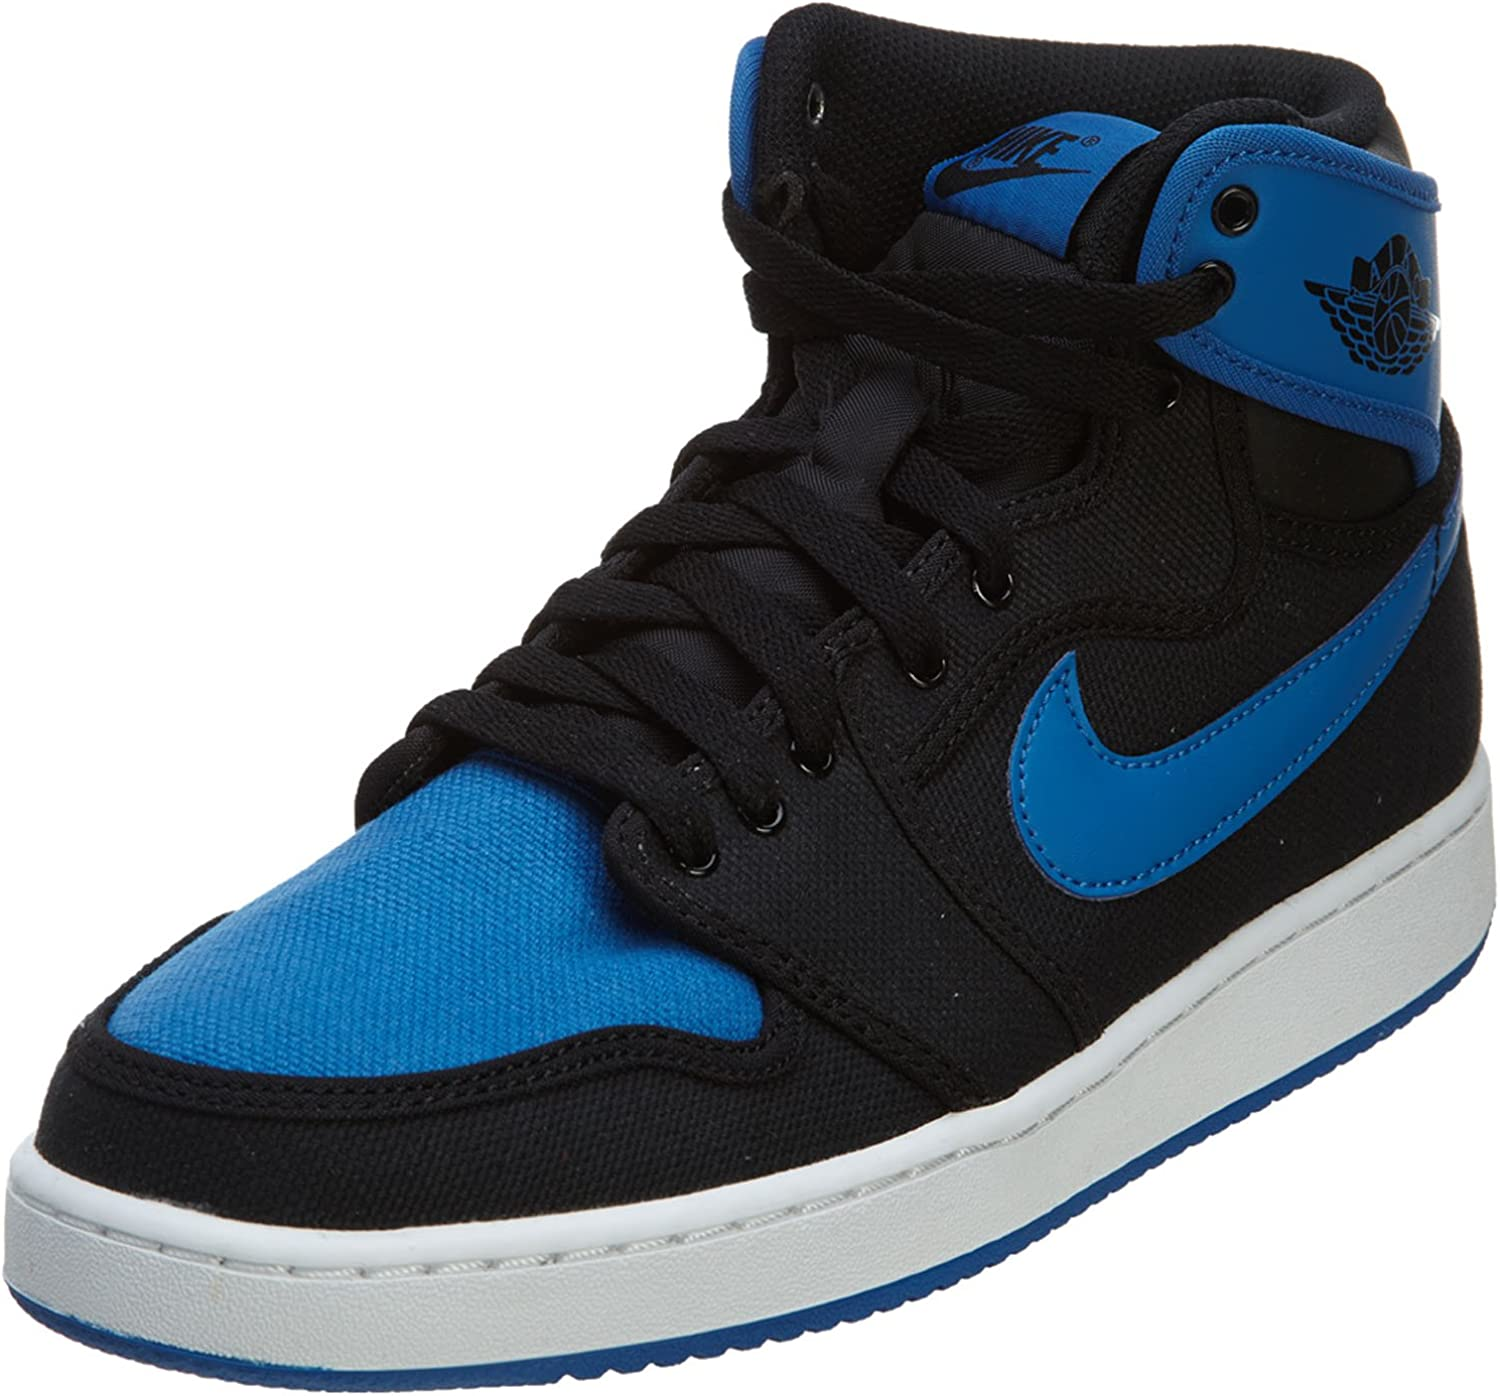 Enriquecer Reclamación libro de bolsillo  Amazon.com | Nike Air Jordan 1 KO High OG Men's Shoes Black/Sport Blue  638471-007 | Basketball